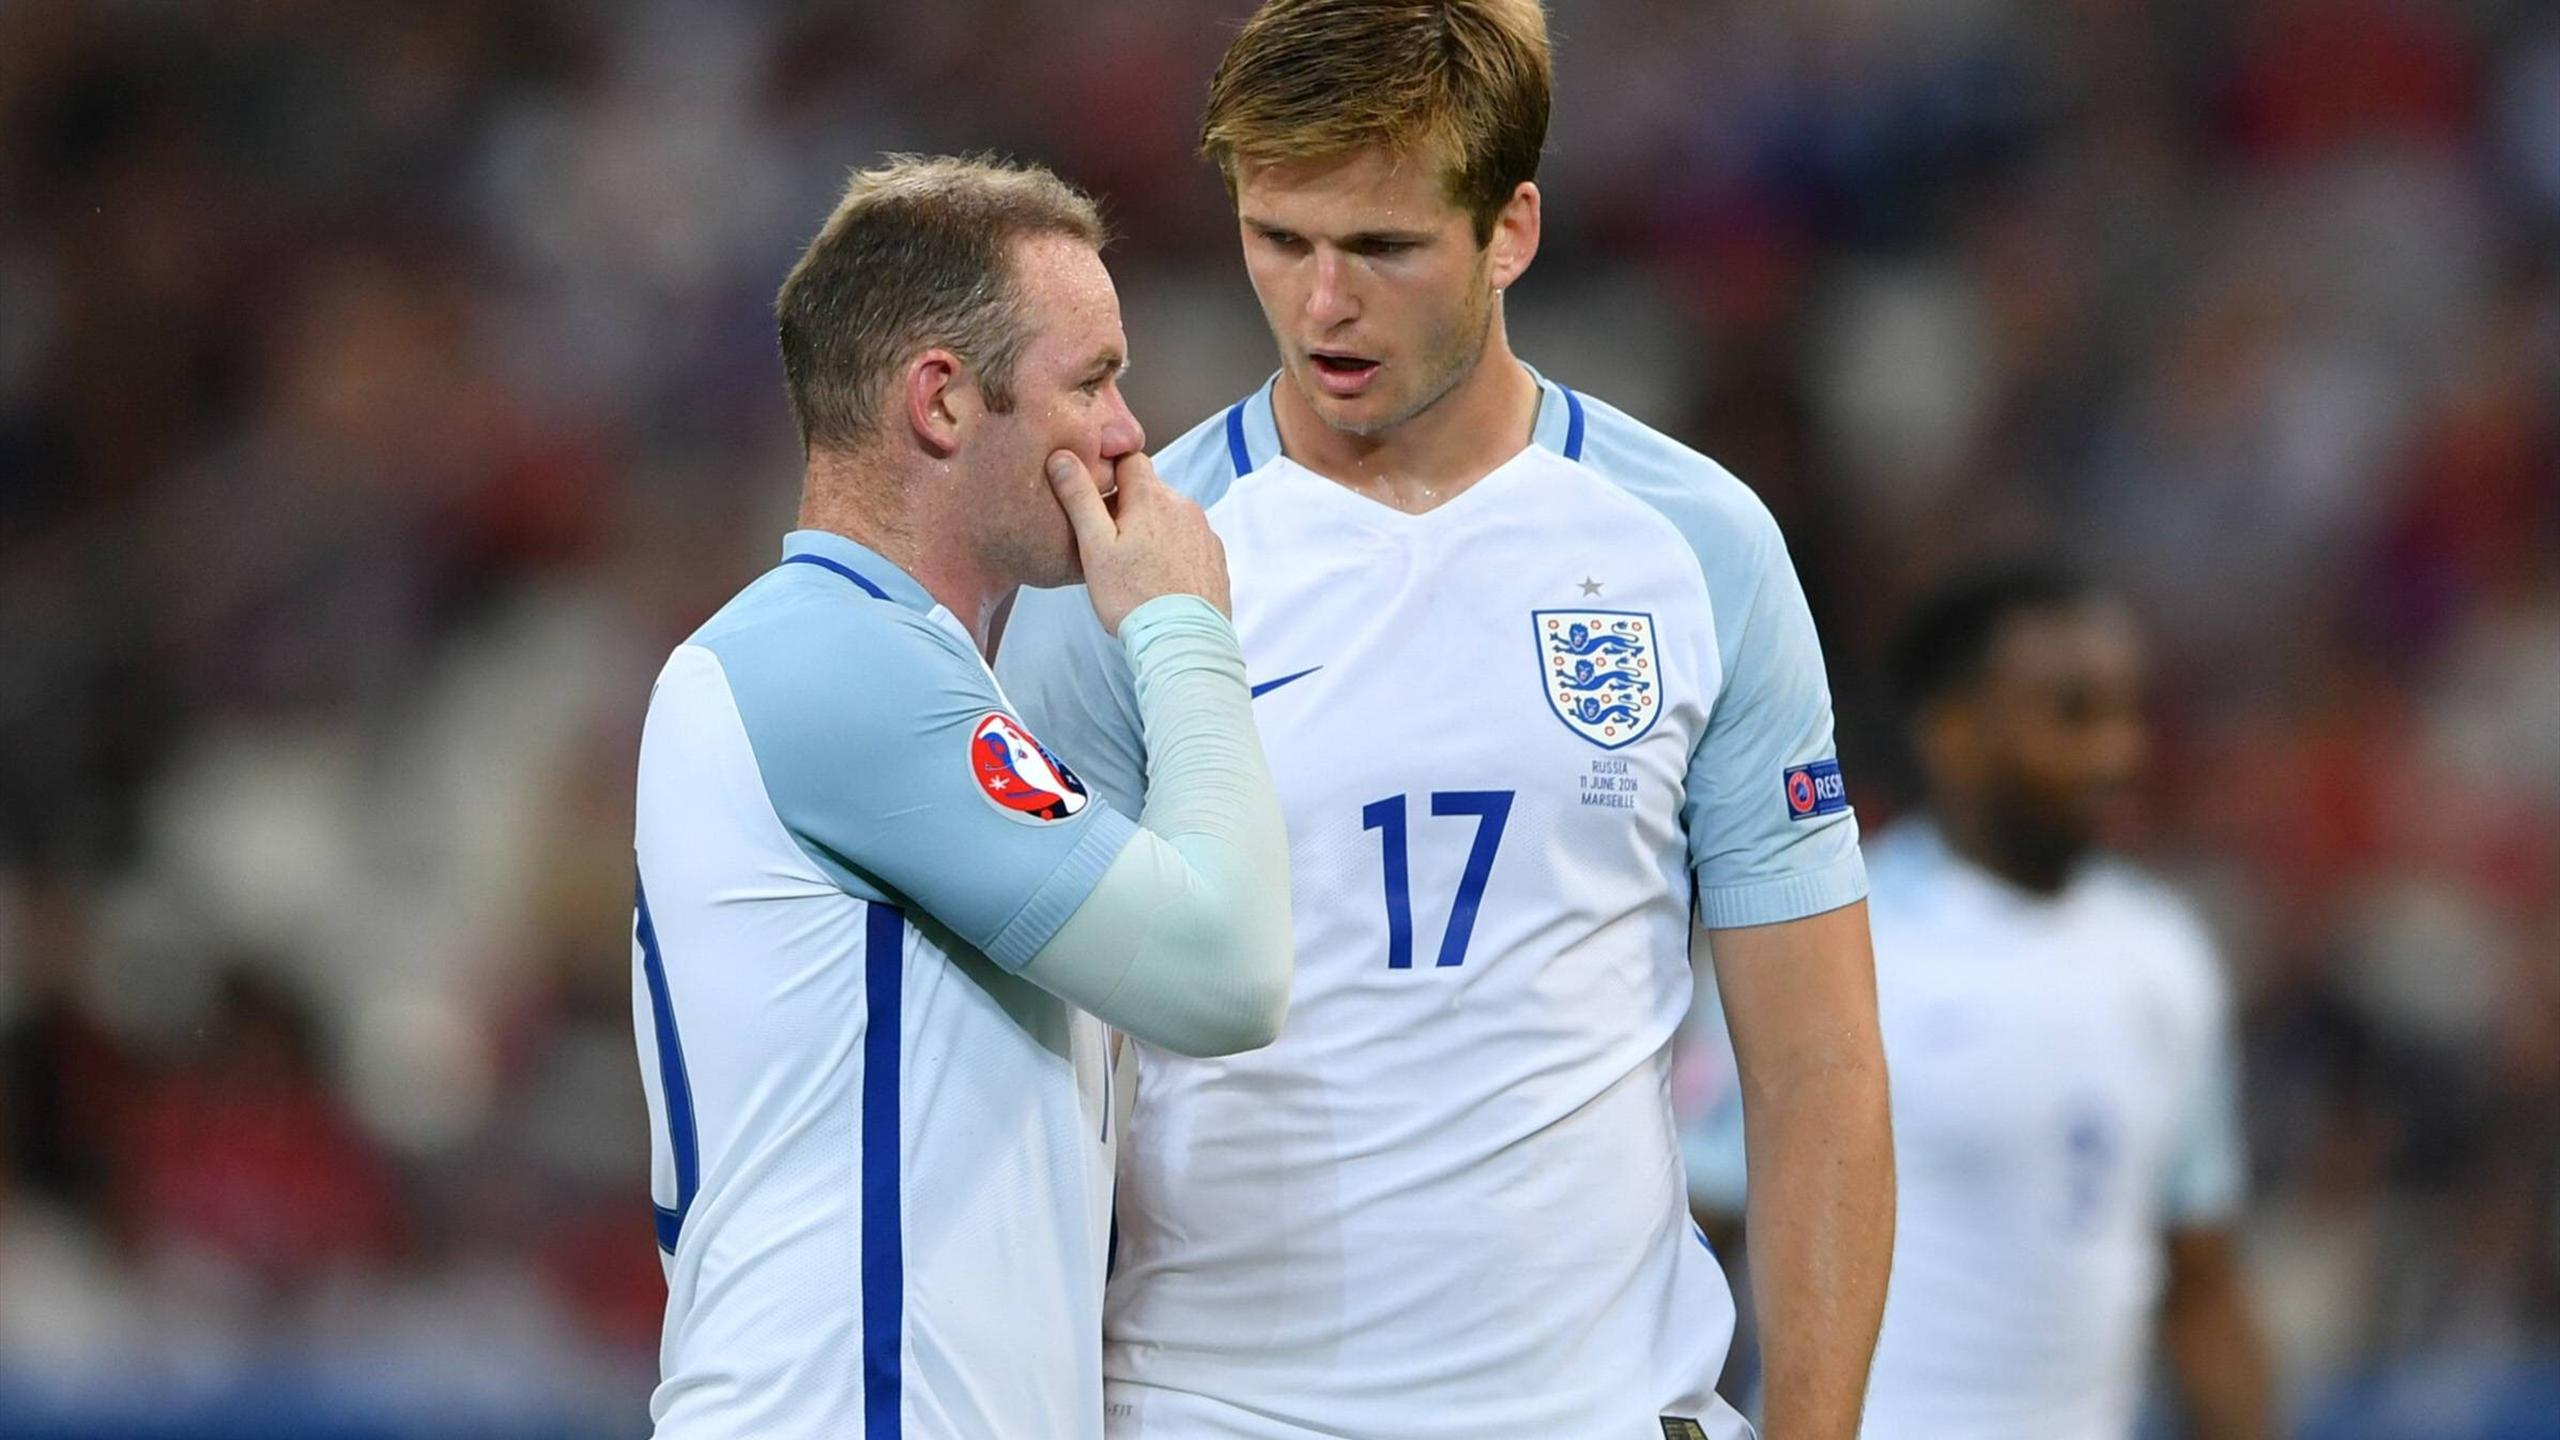 Englands skipper Wayne Rooney and teammate Eric Dier in the match against Russia